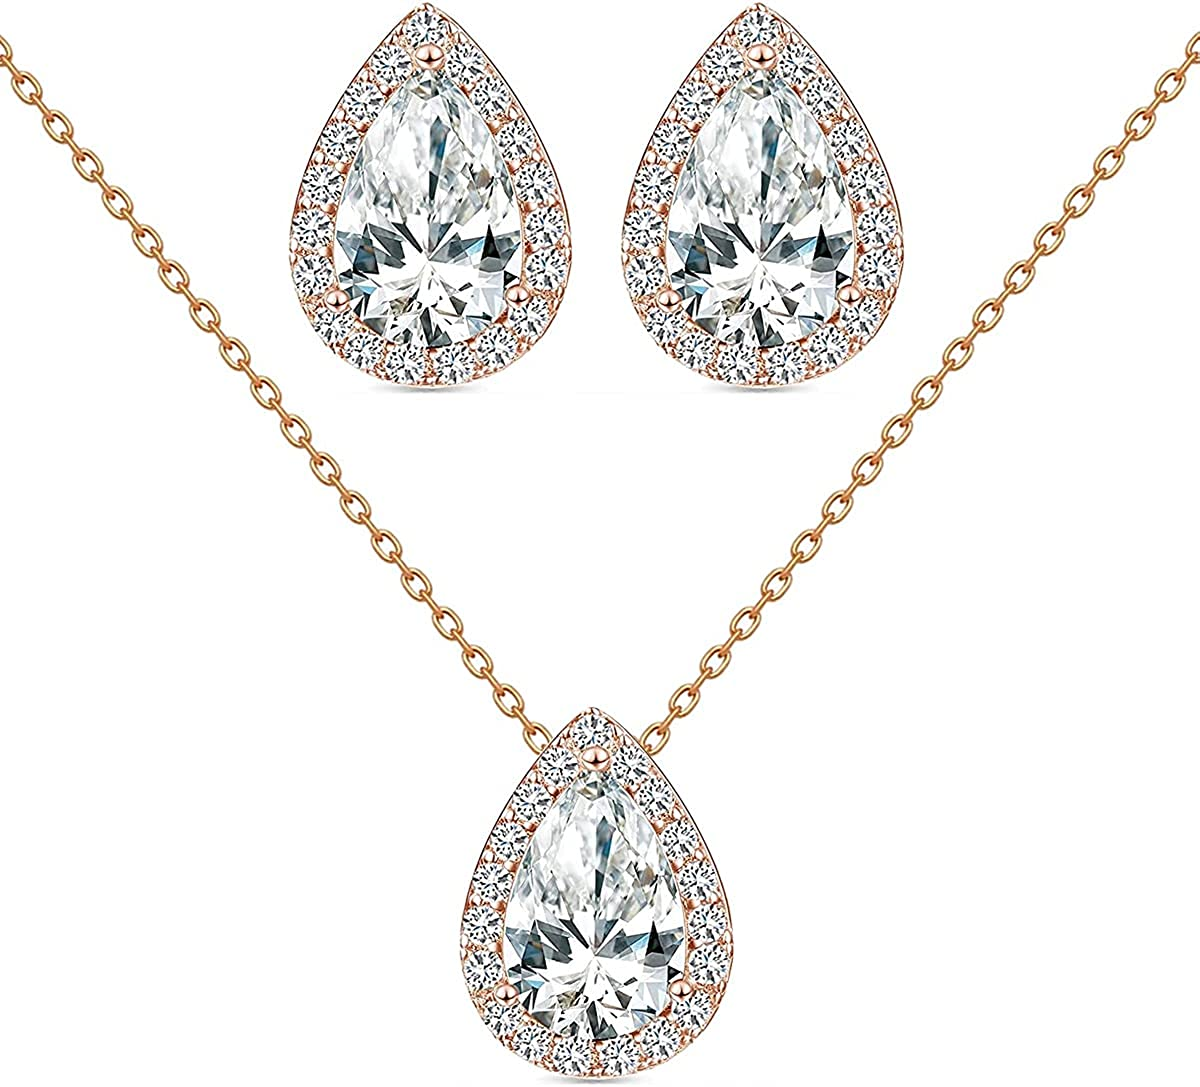 MissDaisy-Bridal Jewelry Set for Women Teardrop Crystal Cubic Zirconia CZ Halo Necklace Earrings Set for Girls Wedding Party Prom Bride Bridesmaids Gift